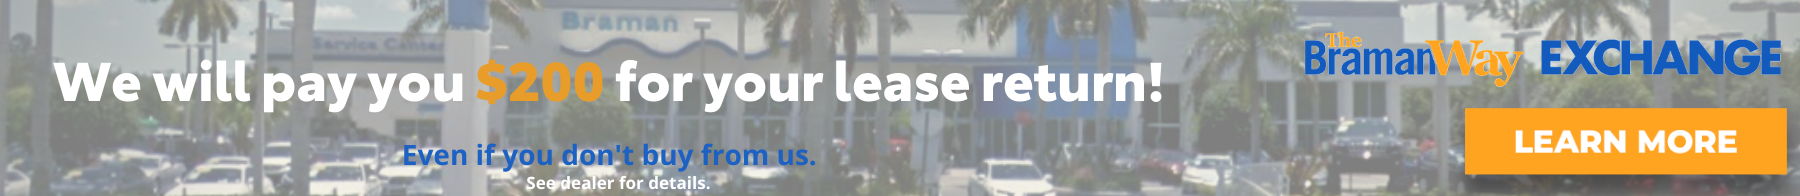 We will pay you $200 for your lease return! (1)